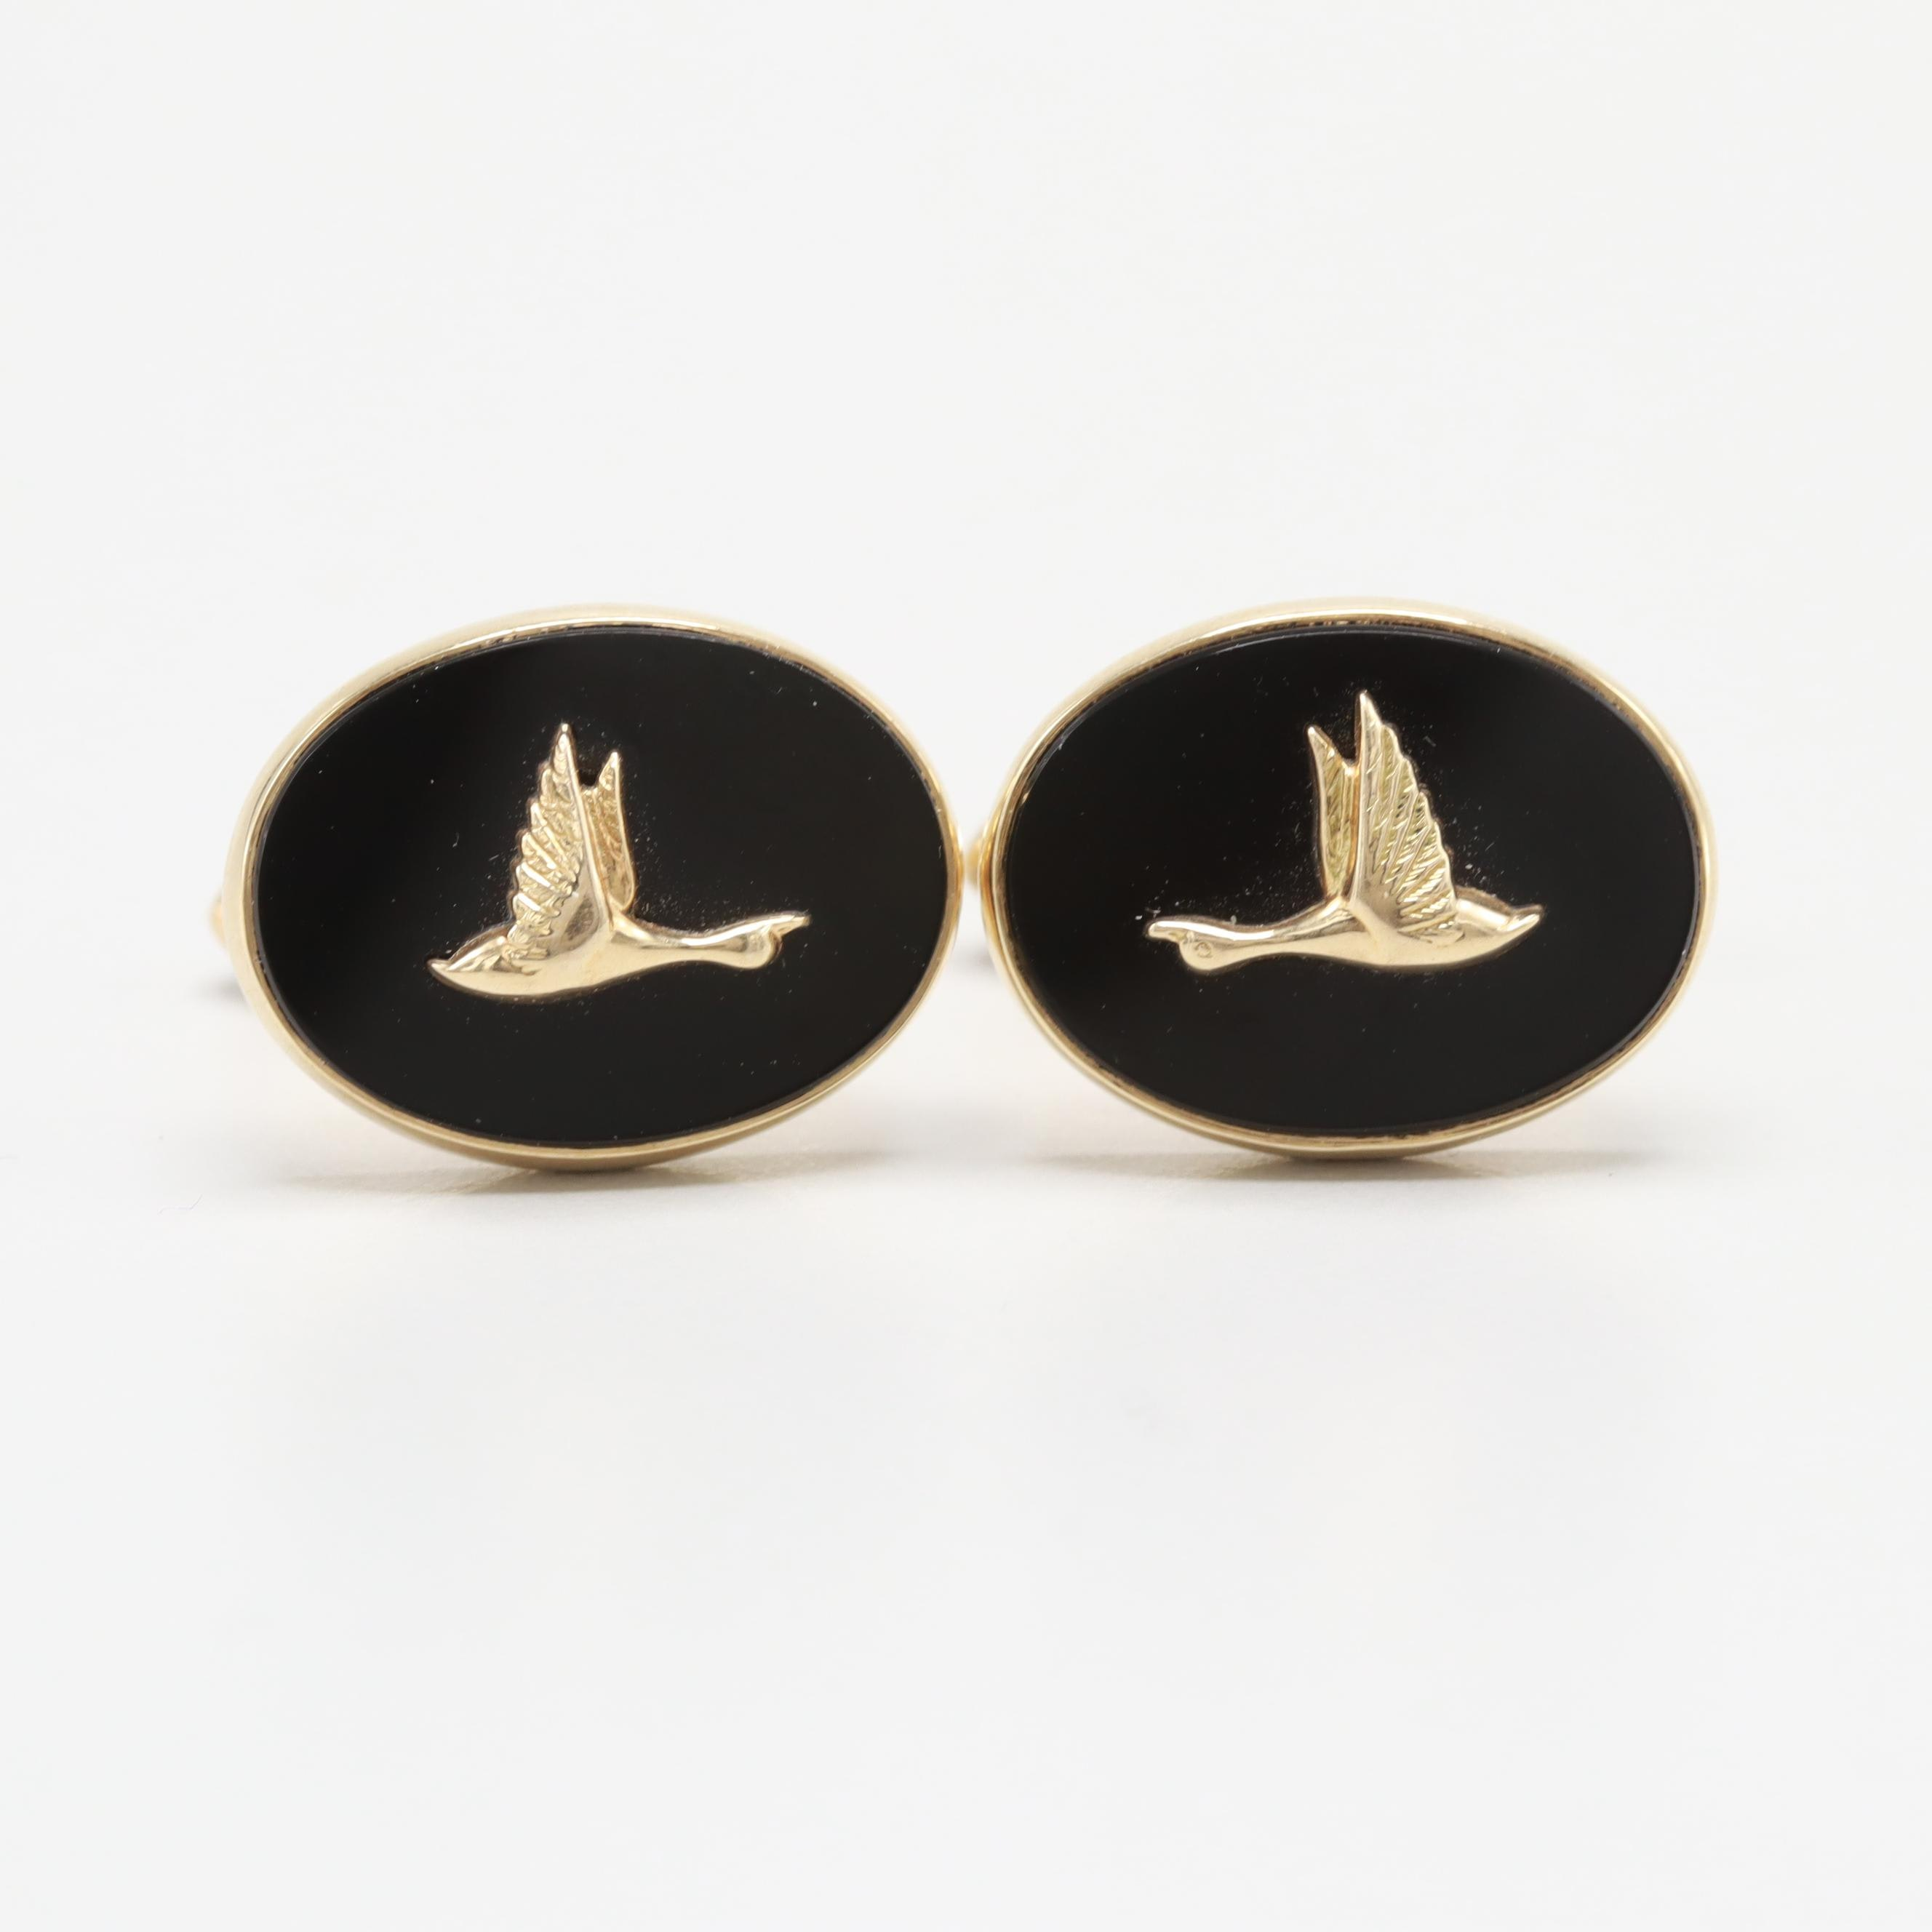 Larter & Sons 14K Yellow Gold Black Onyx Flying Geese Cufflinks